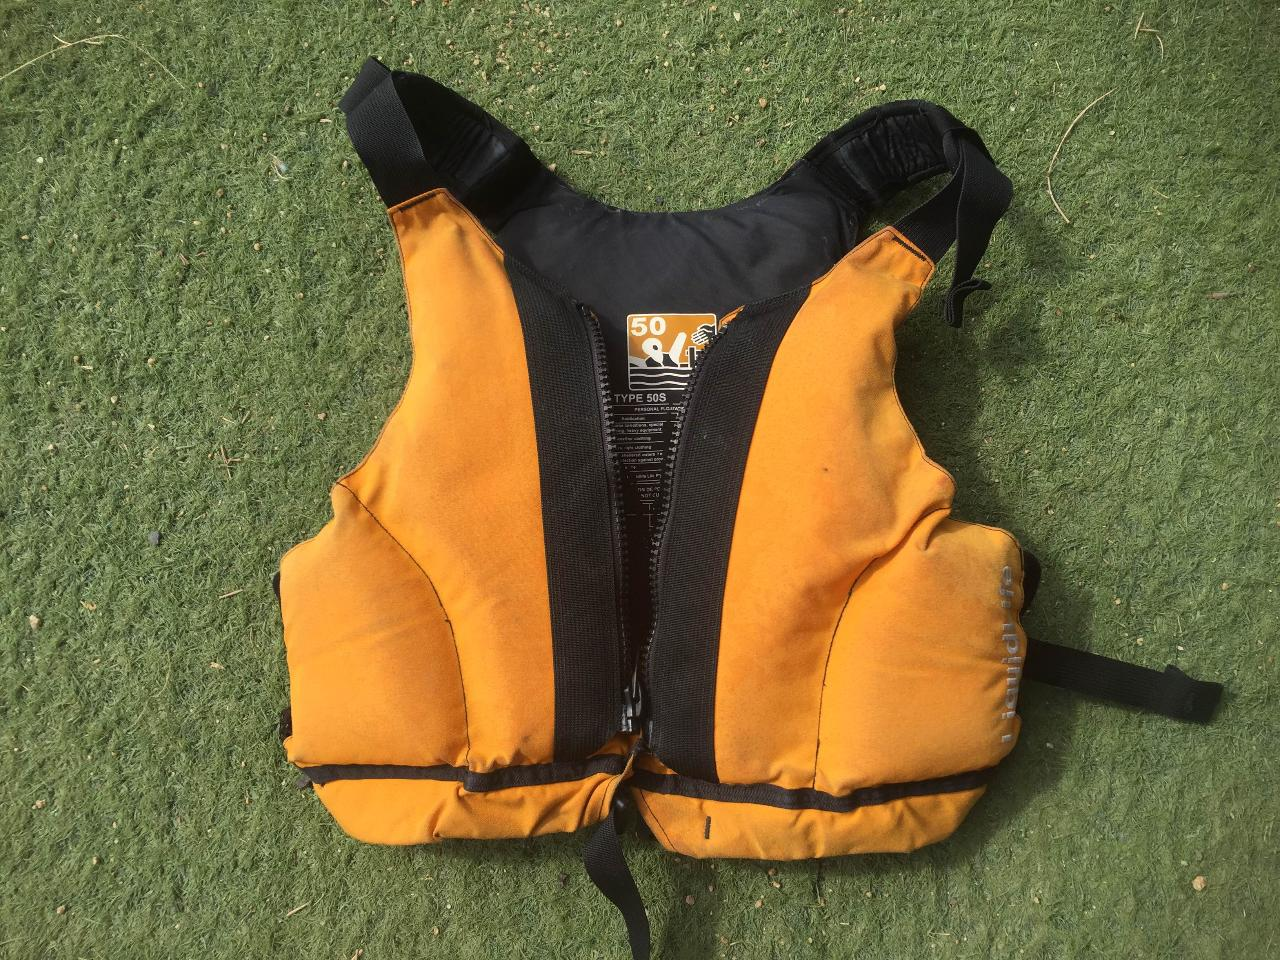 Equipment Hire - PFD, Paddle or Dry Bag